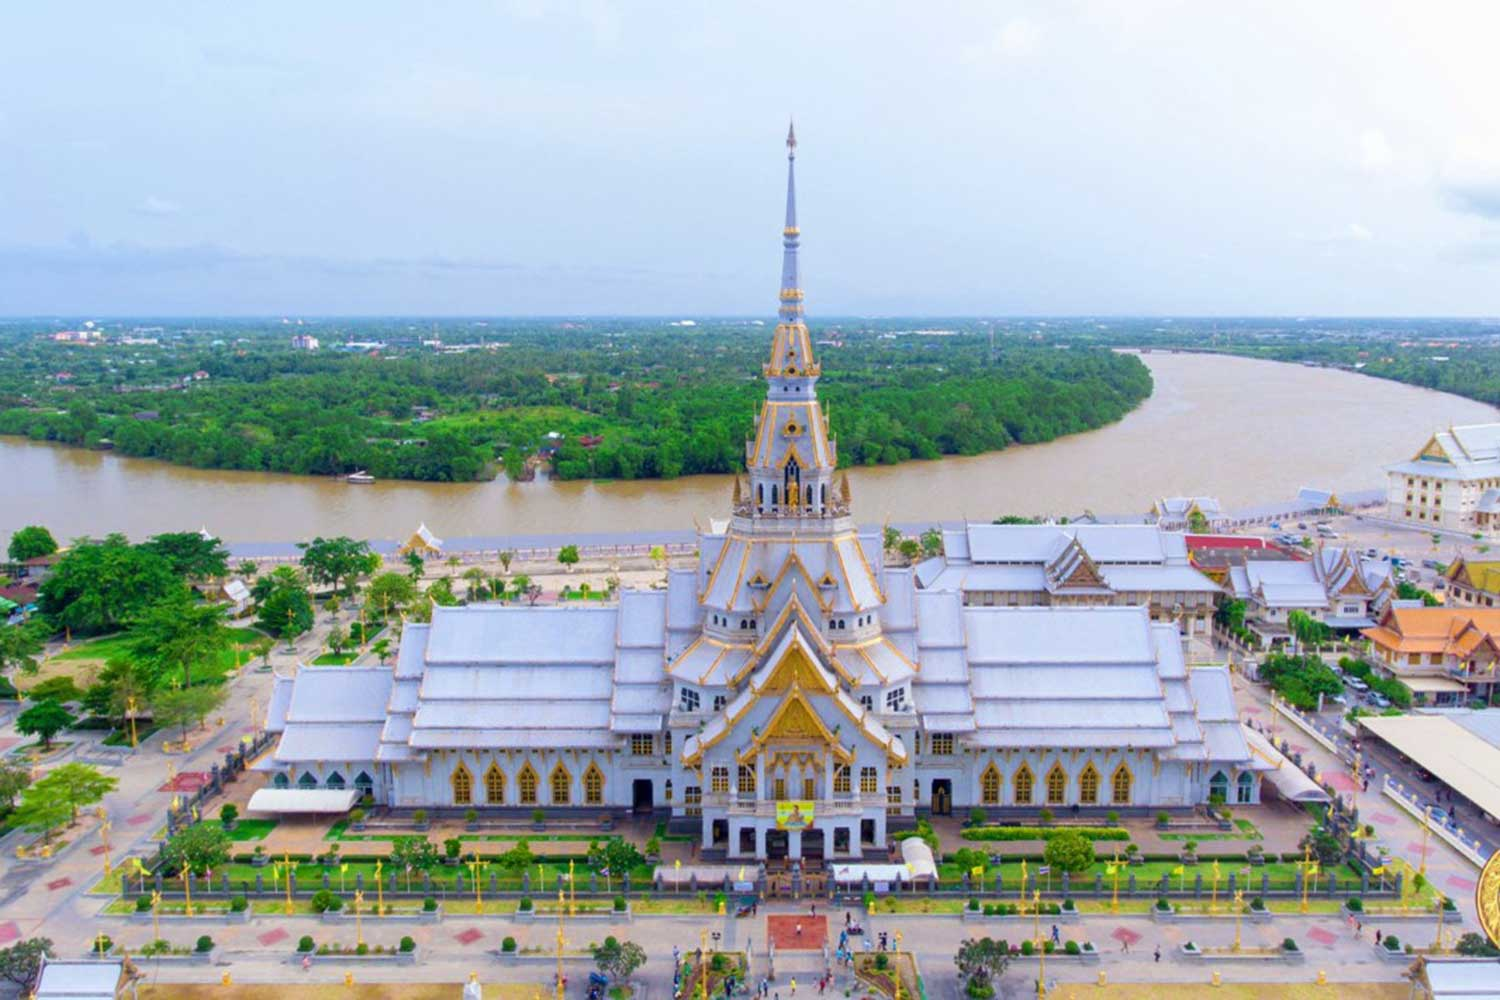 Wat Sothon Wararam Worawihan in Chachoengsao province, which houses the revered Luang Phor Phra Buddha Shinnarat Buddha image, has been closed for two weeks to protect worshippers from the spread of Covid-19.  (Photo by Sonthanaporn Inchan)